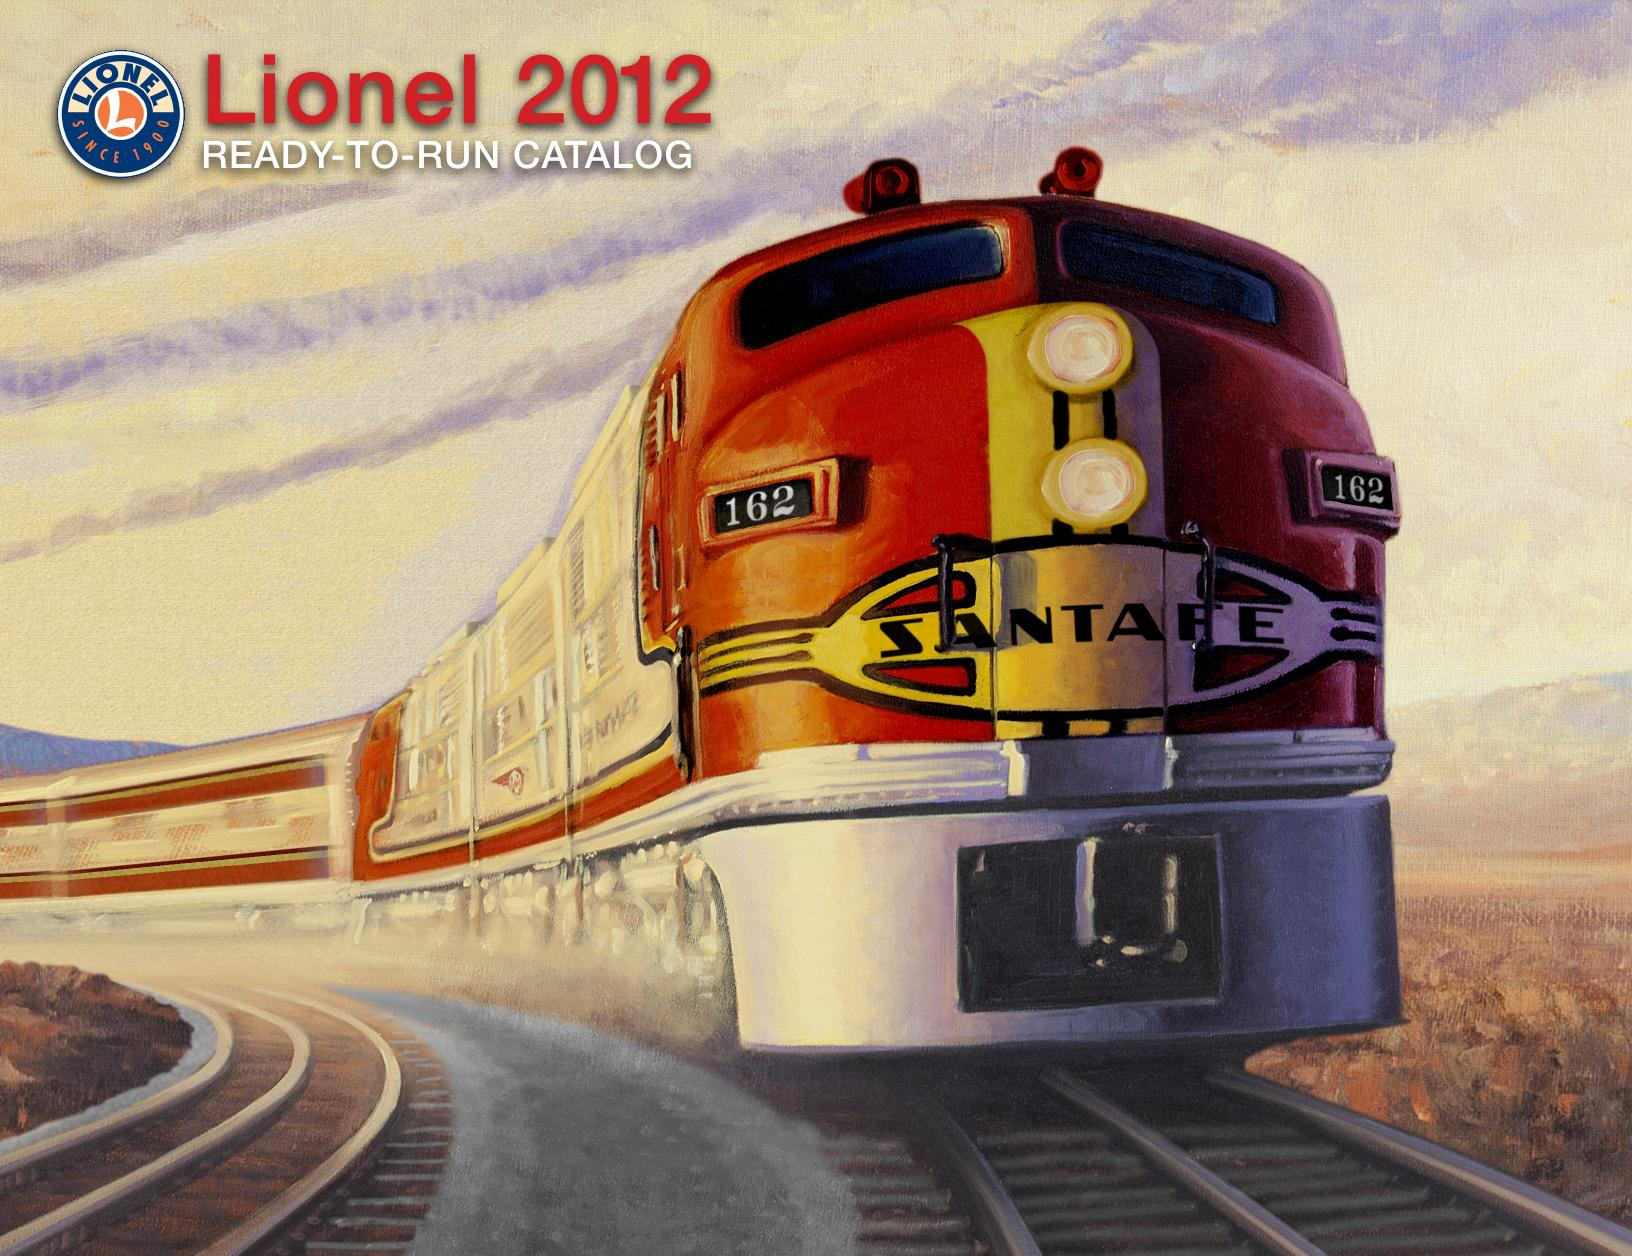 Lionel Catalogs - Ready To Run 2012